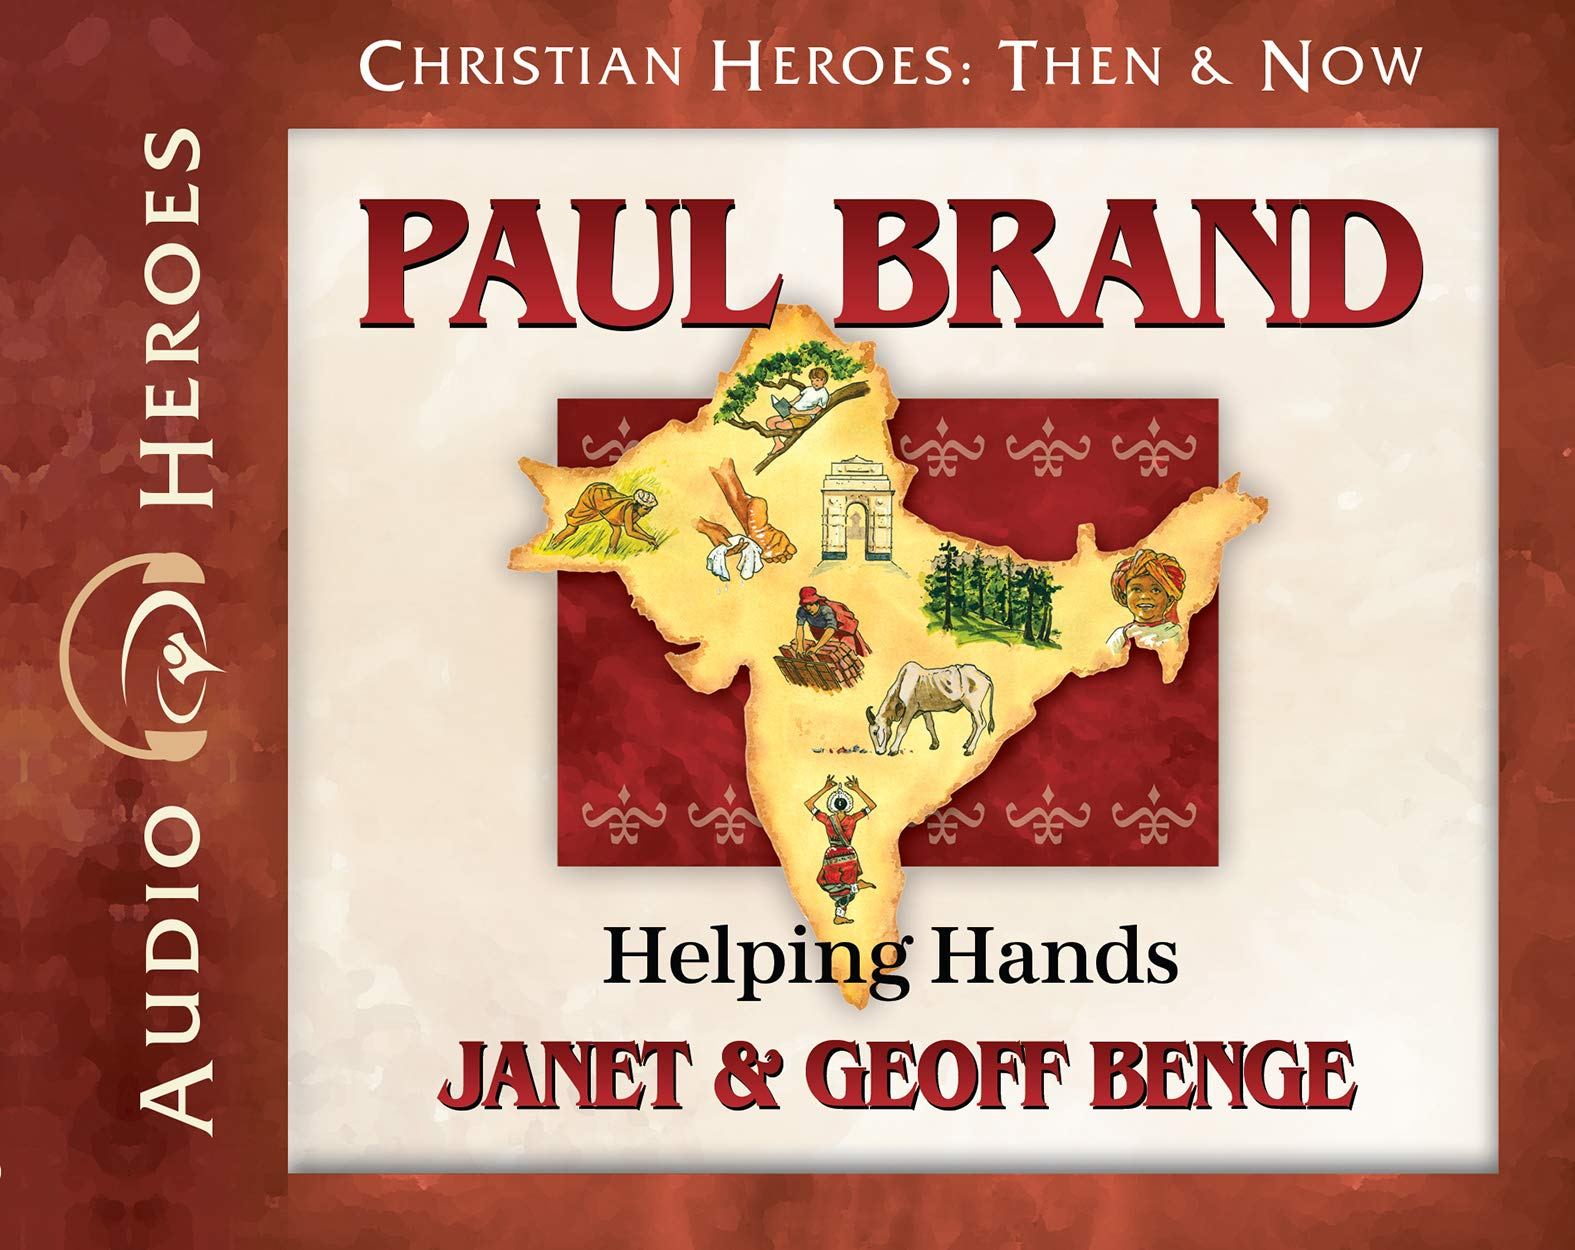 Paul Brand Audiobook: Helping Hands (Christian Heroes: Then & Now)